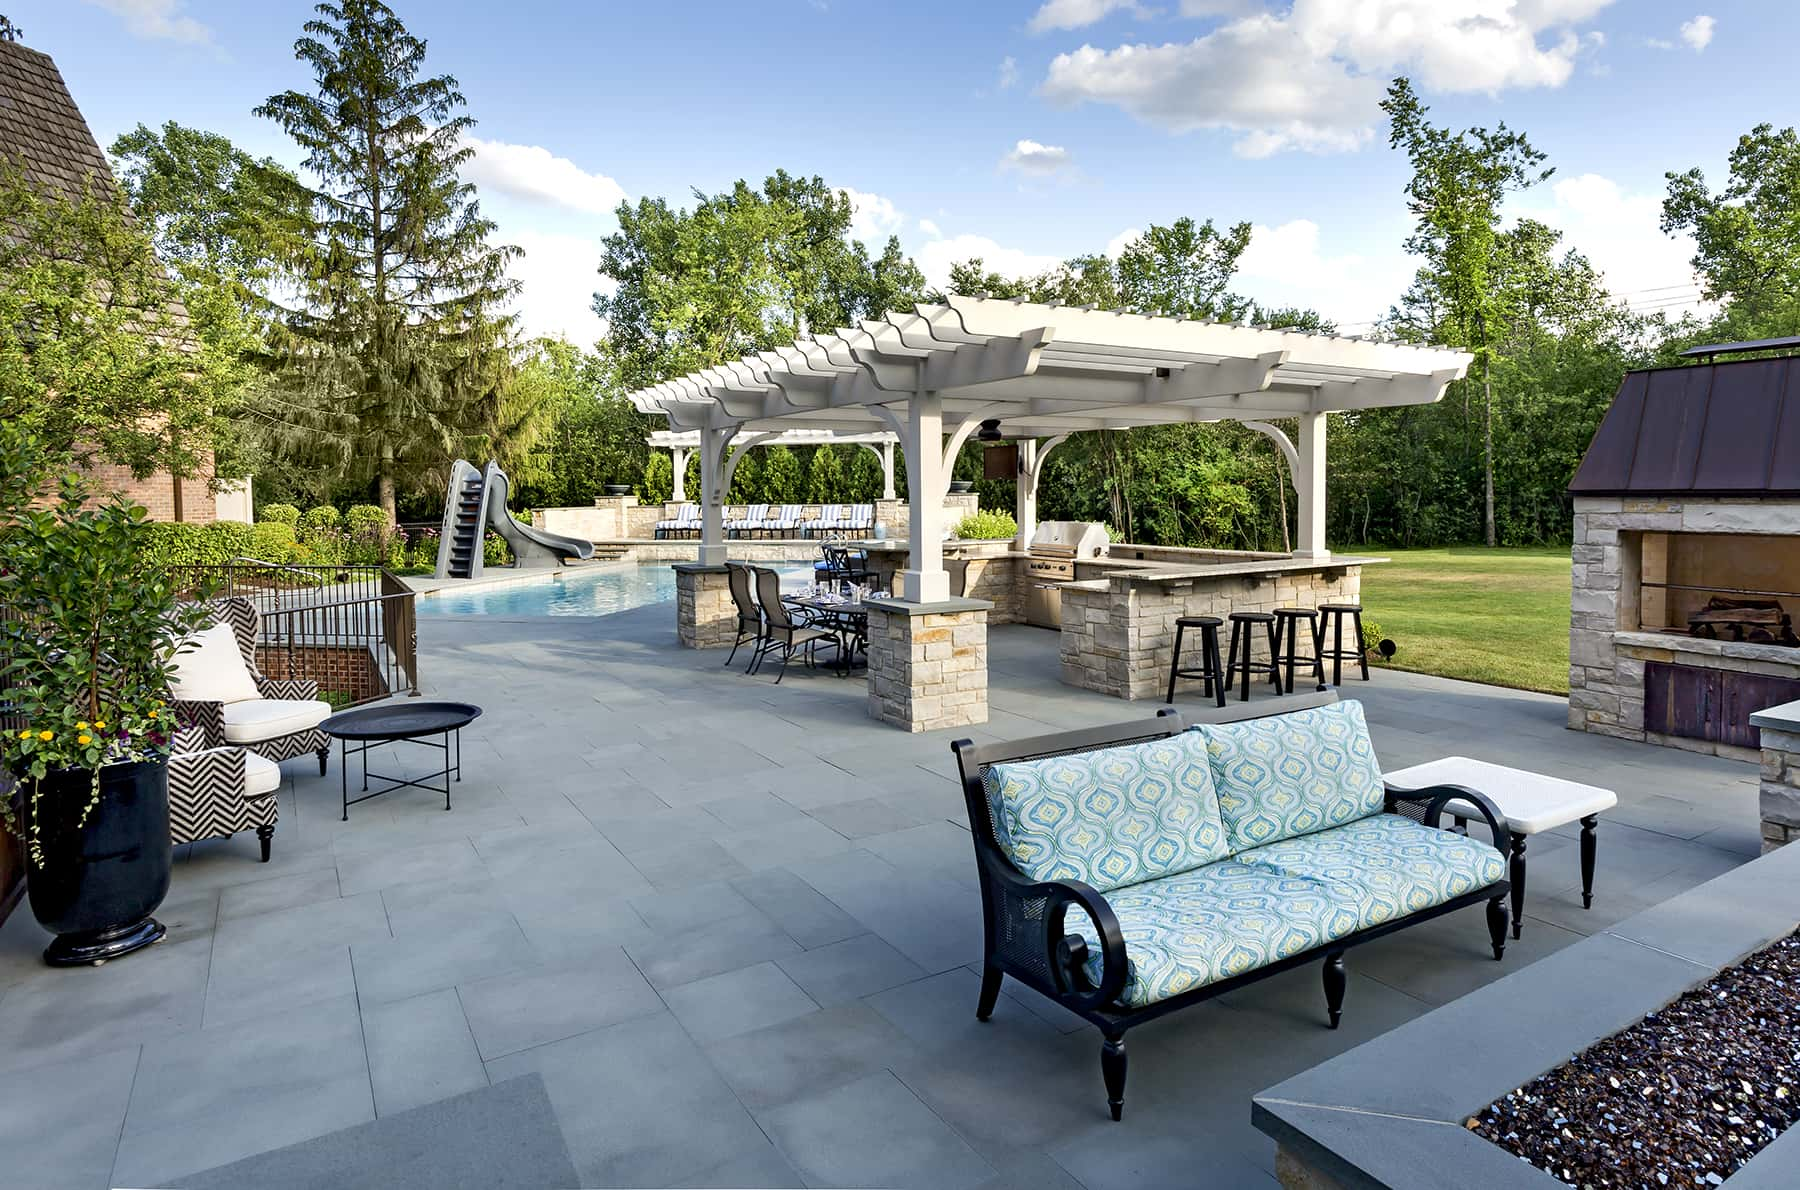 Blue Stone Patio With Pergola & Fire Pit